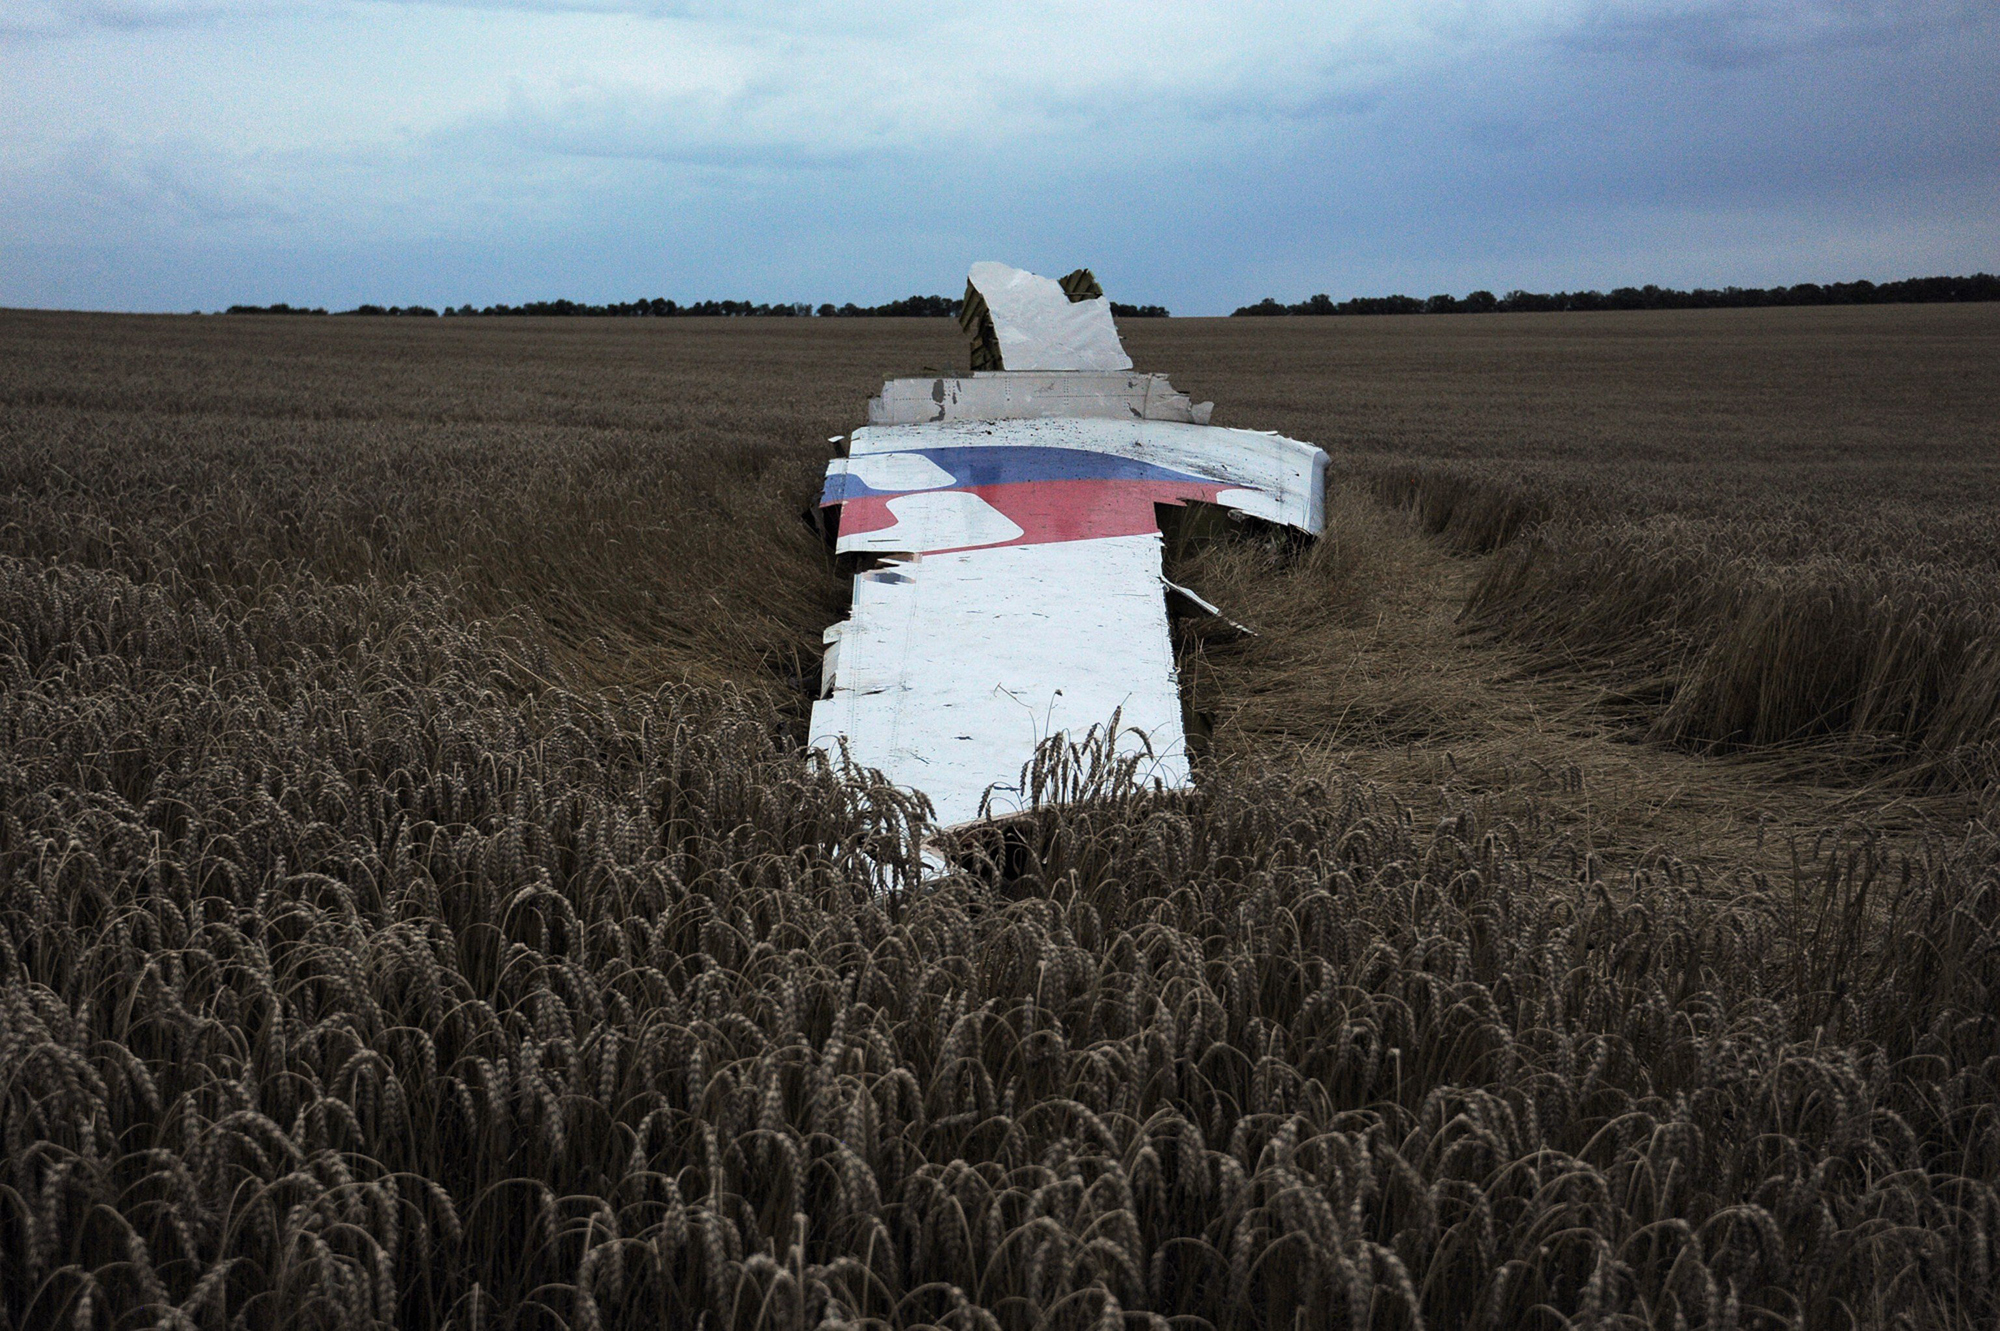 The wreckage of the Malaysian airliner carrying 295 people from Amsterdam to Kuala Lumpur after it crashed, near the town of Shaktarsk, in rebel-held east Ukraine, July 17, 2014.